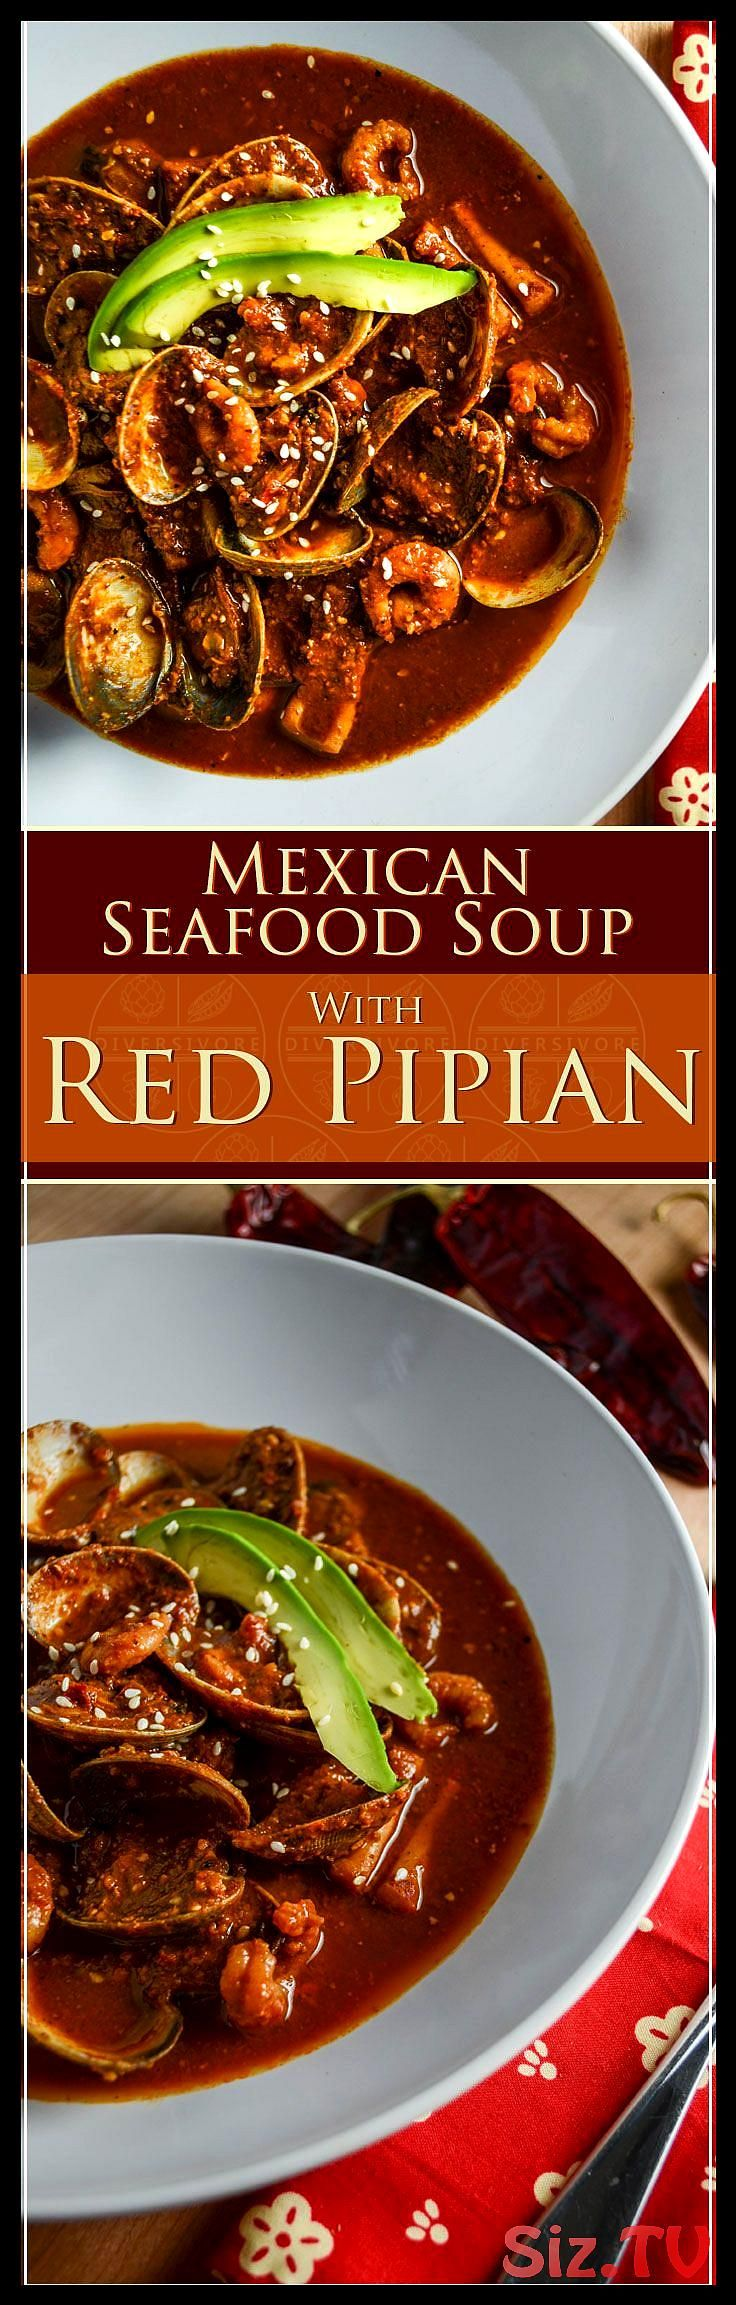 Red Pipian Seafood Soup Red Pipian Seafood Soup Mole Doesn T Have To Be Insanely Complicated Red Pipian Sauce Is Packed With Flavour But Fairly Easy To Prepare And To Transform Into A Rich Velvety Soup Mexican Red Pipian Seafood Soup